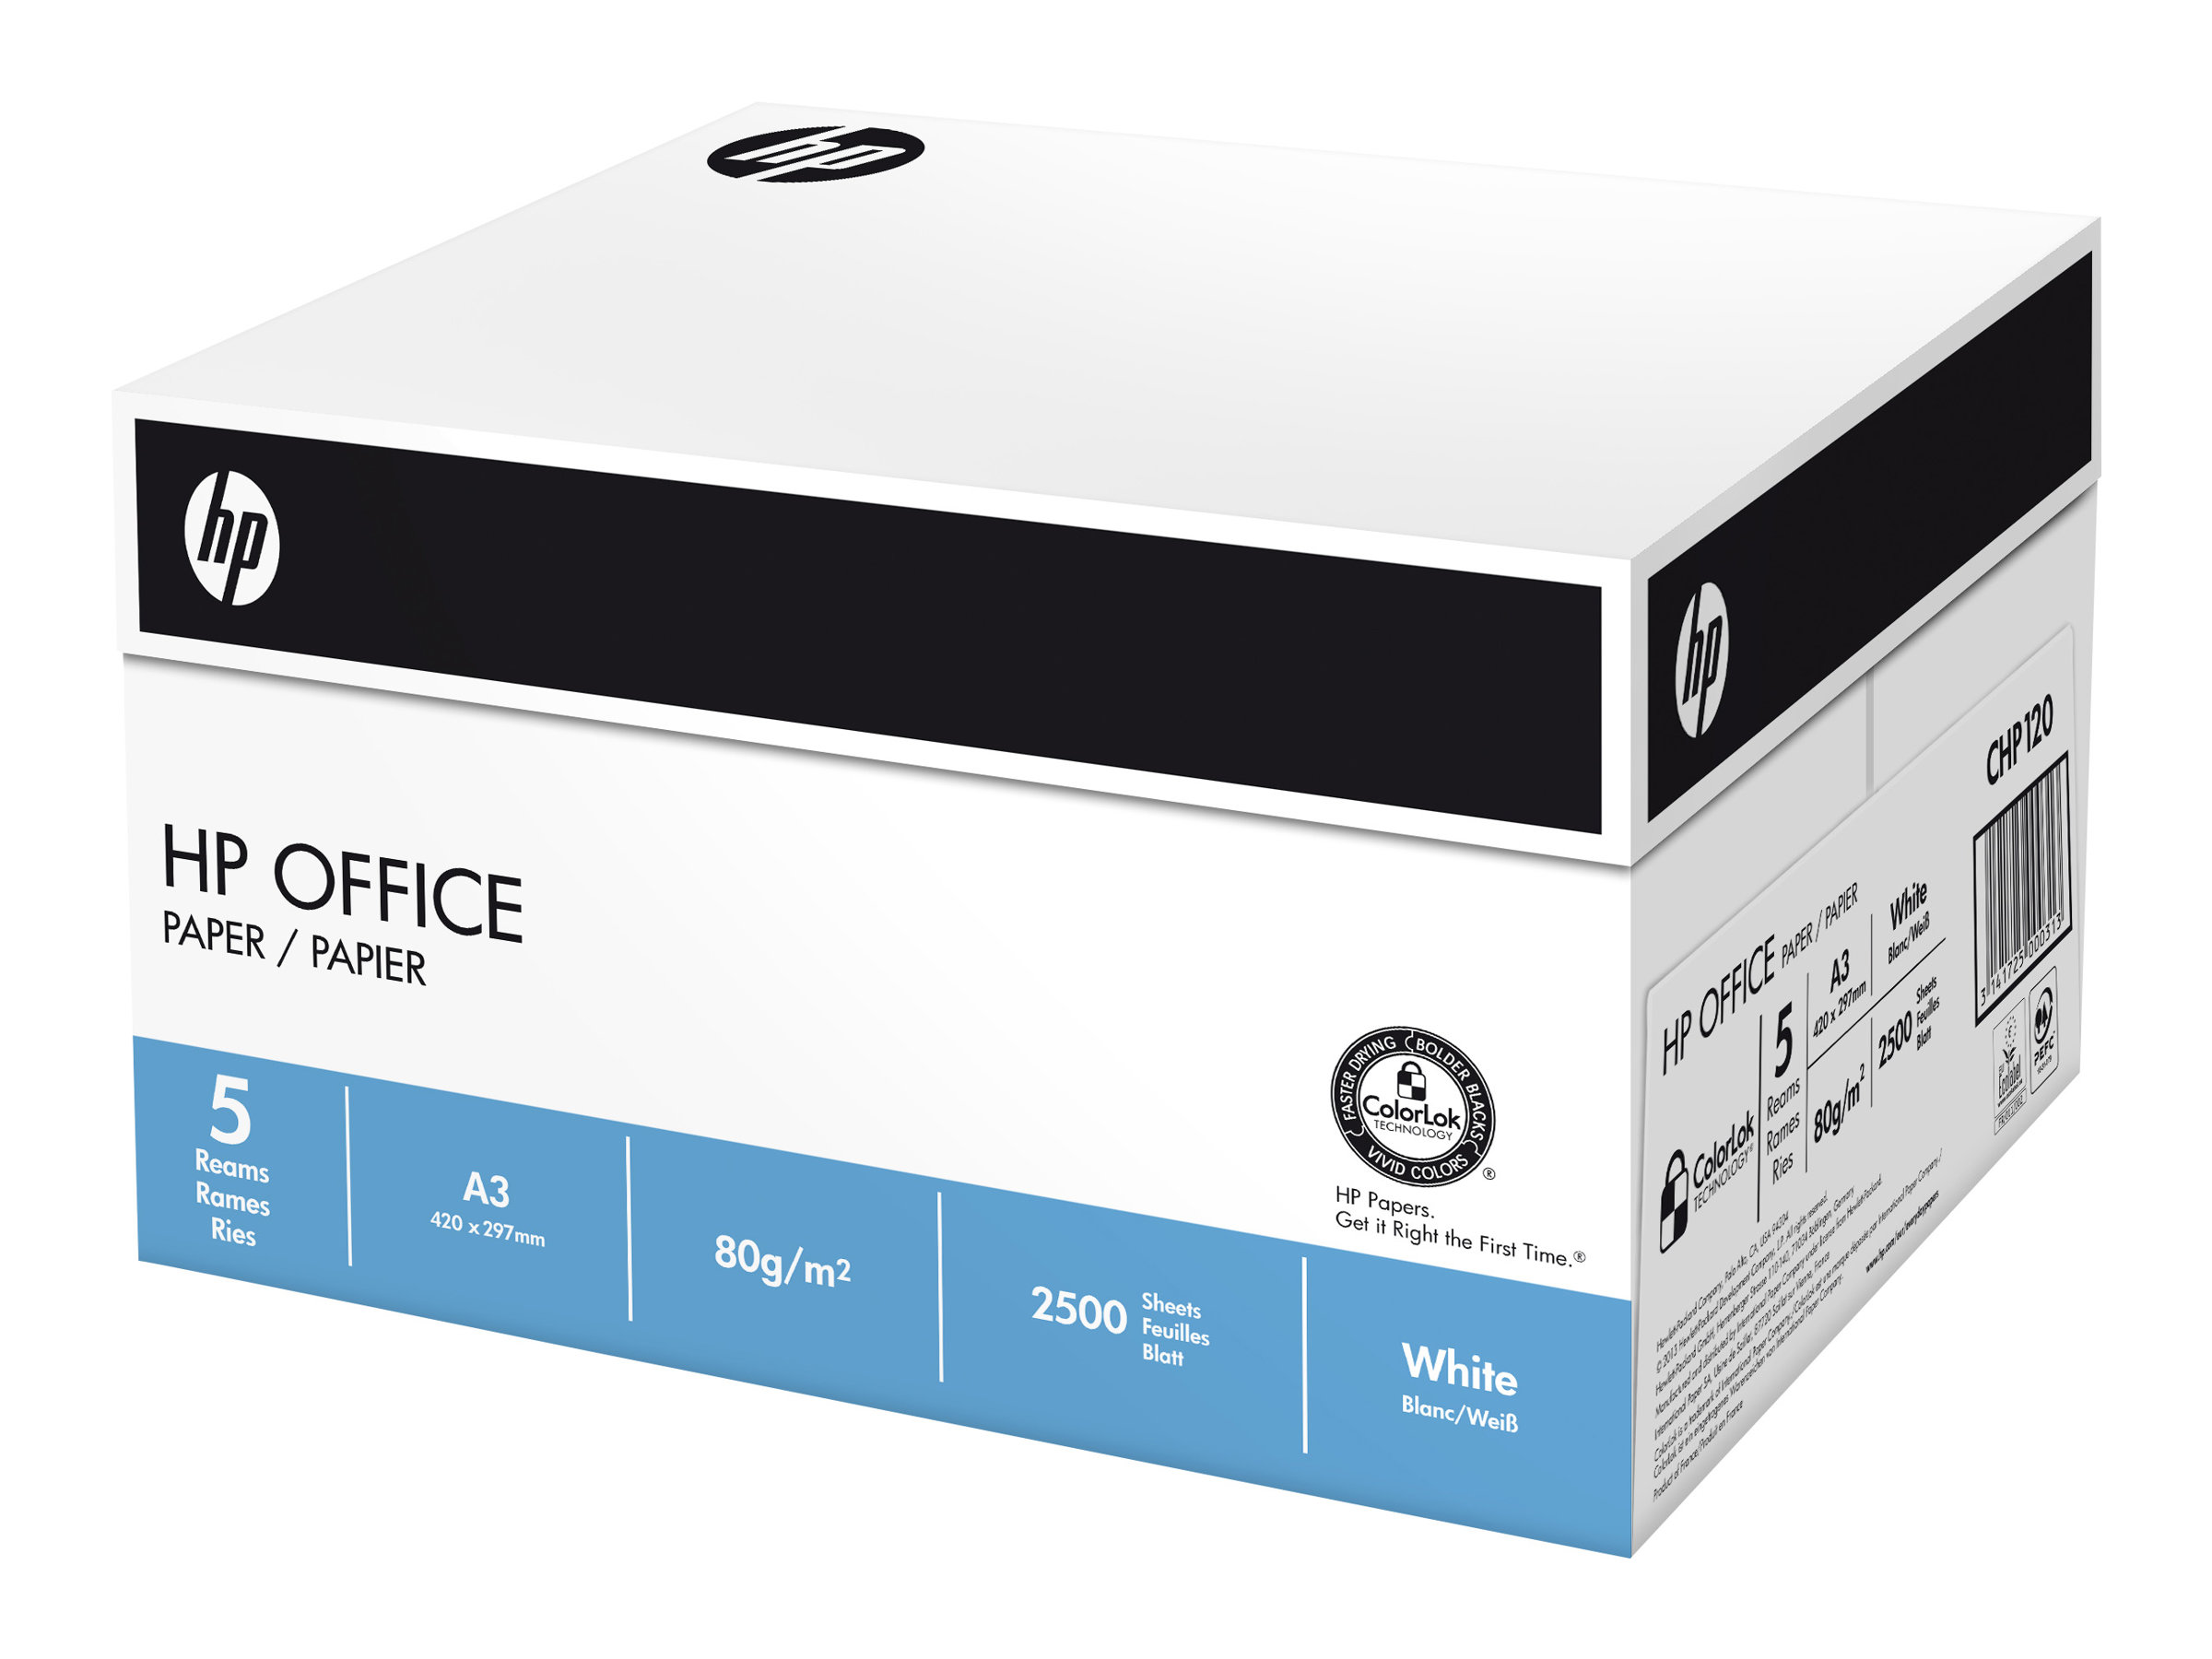 HP Office Paper - A3 (297 x 420 mm) - 80 g/m²